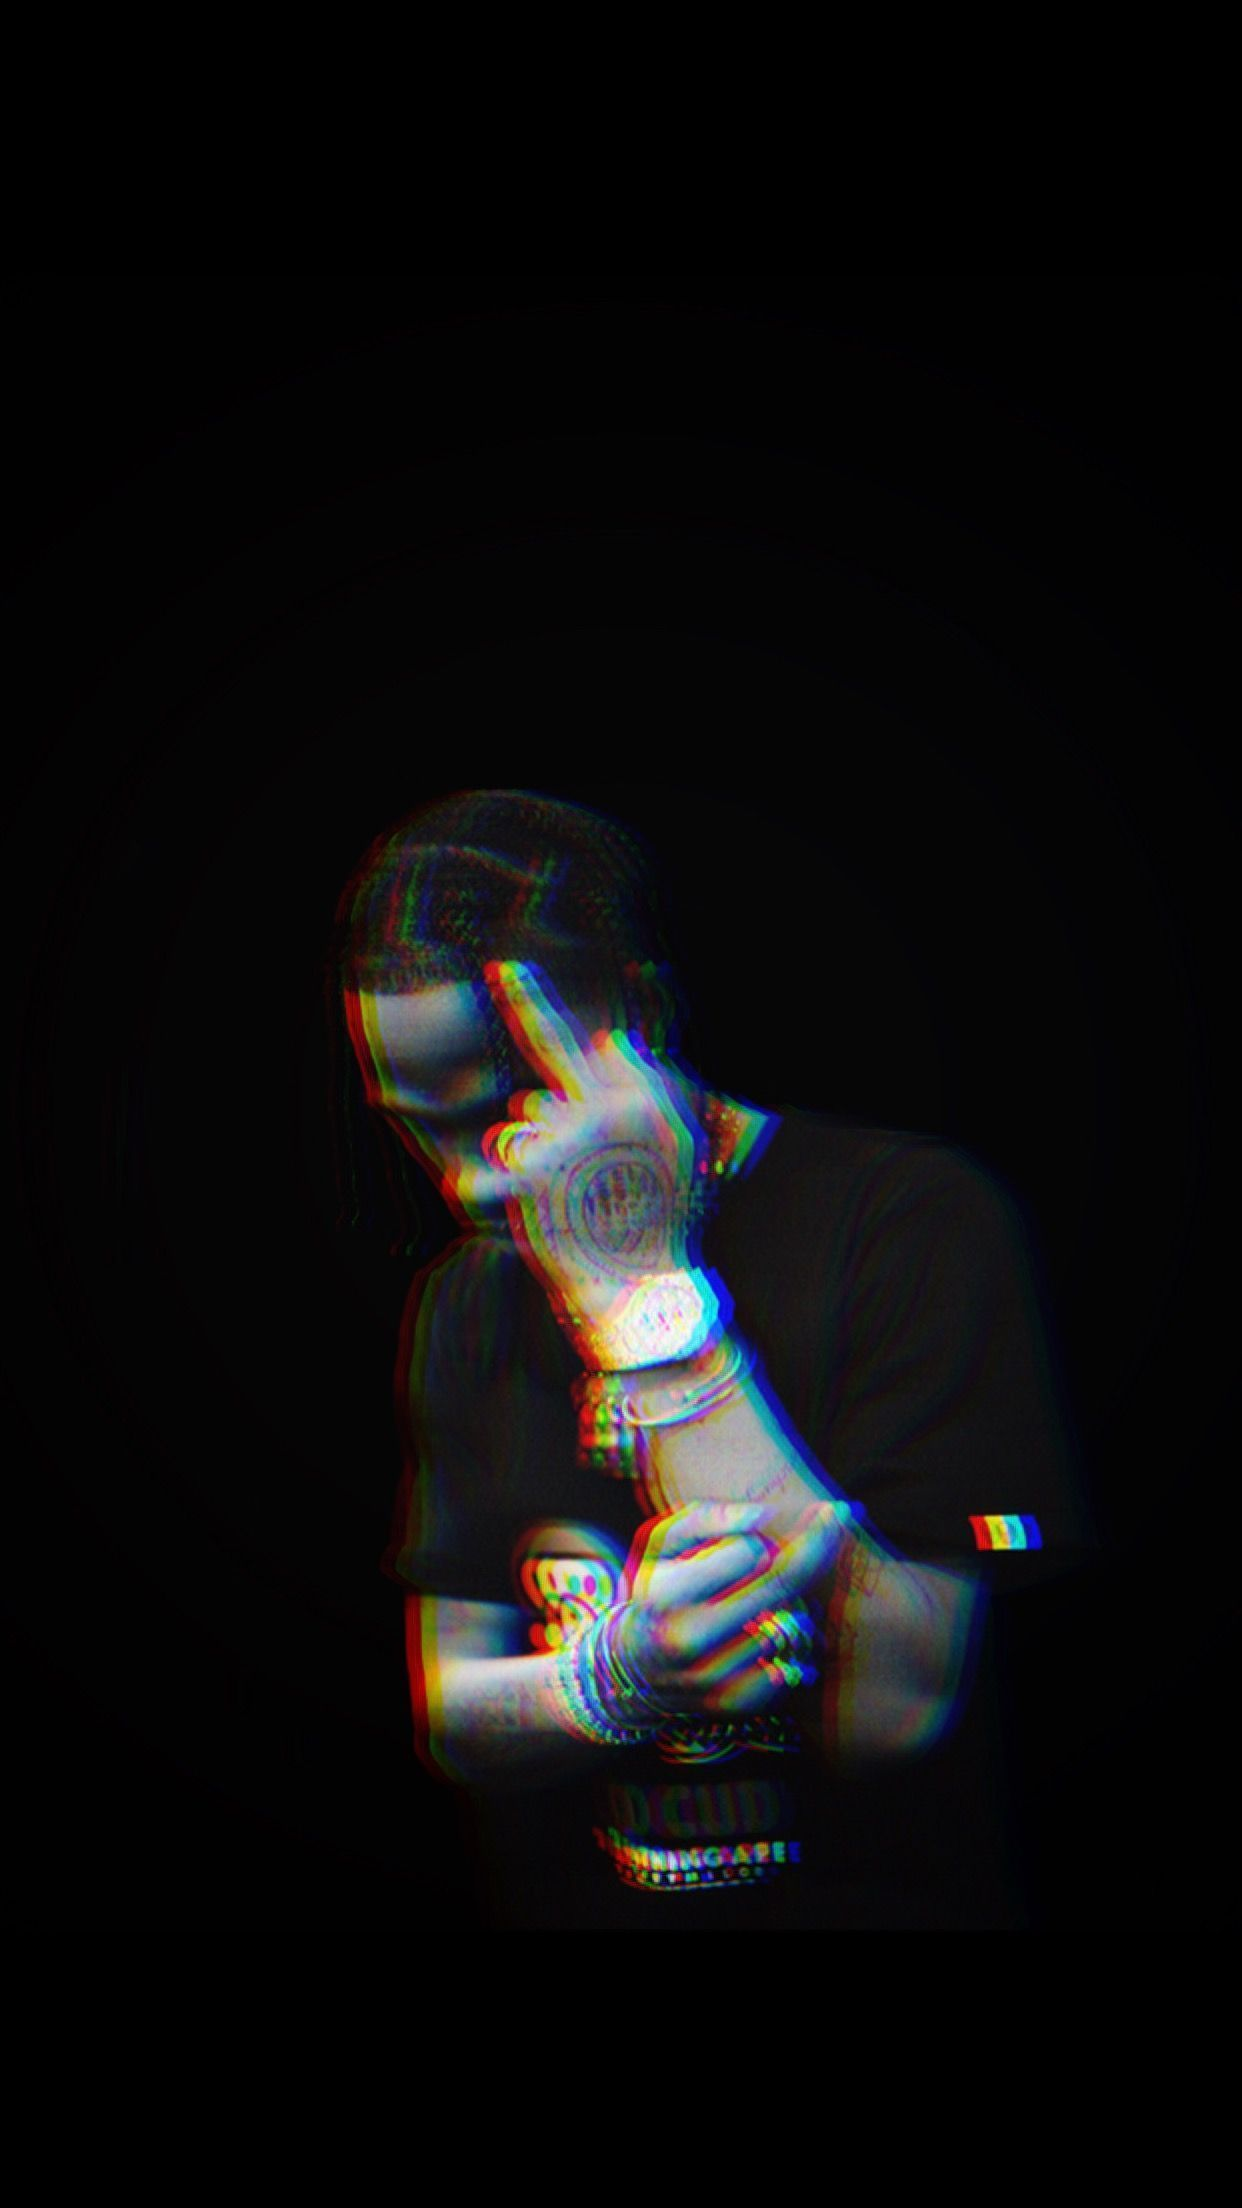 Pin By Christian Paoletti On Rappers In 2020 Travis Scott Wallpapers Travis Scott Travis Scott Art